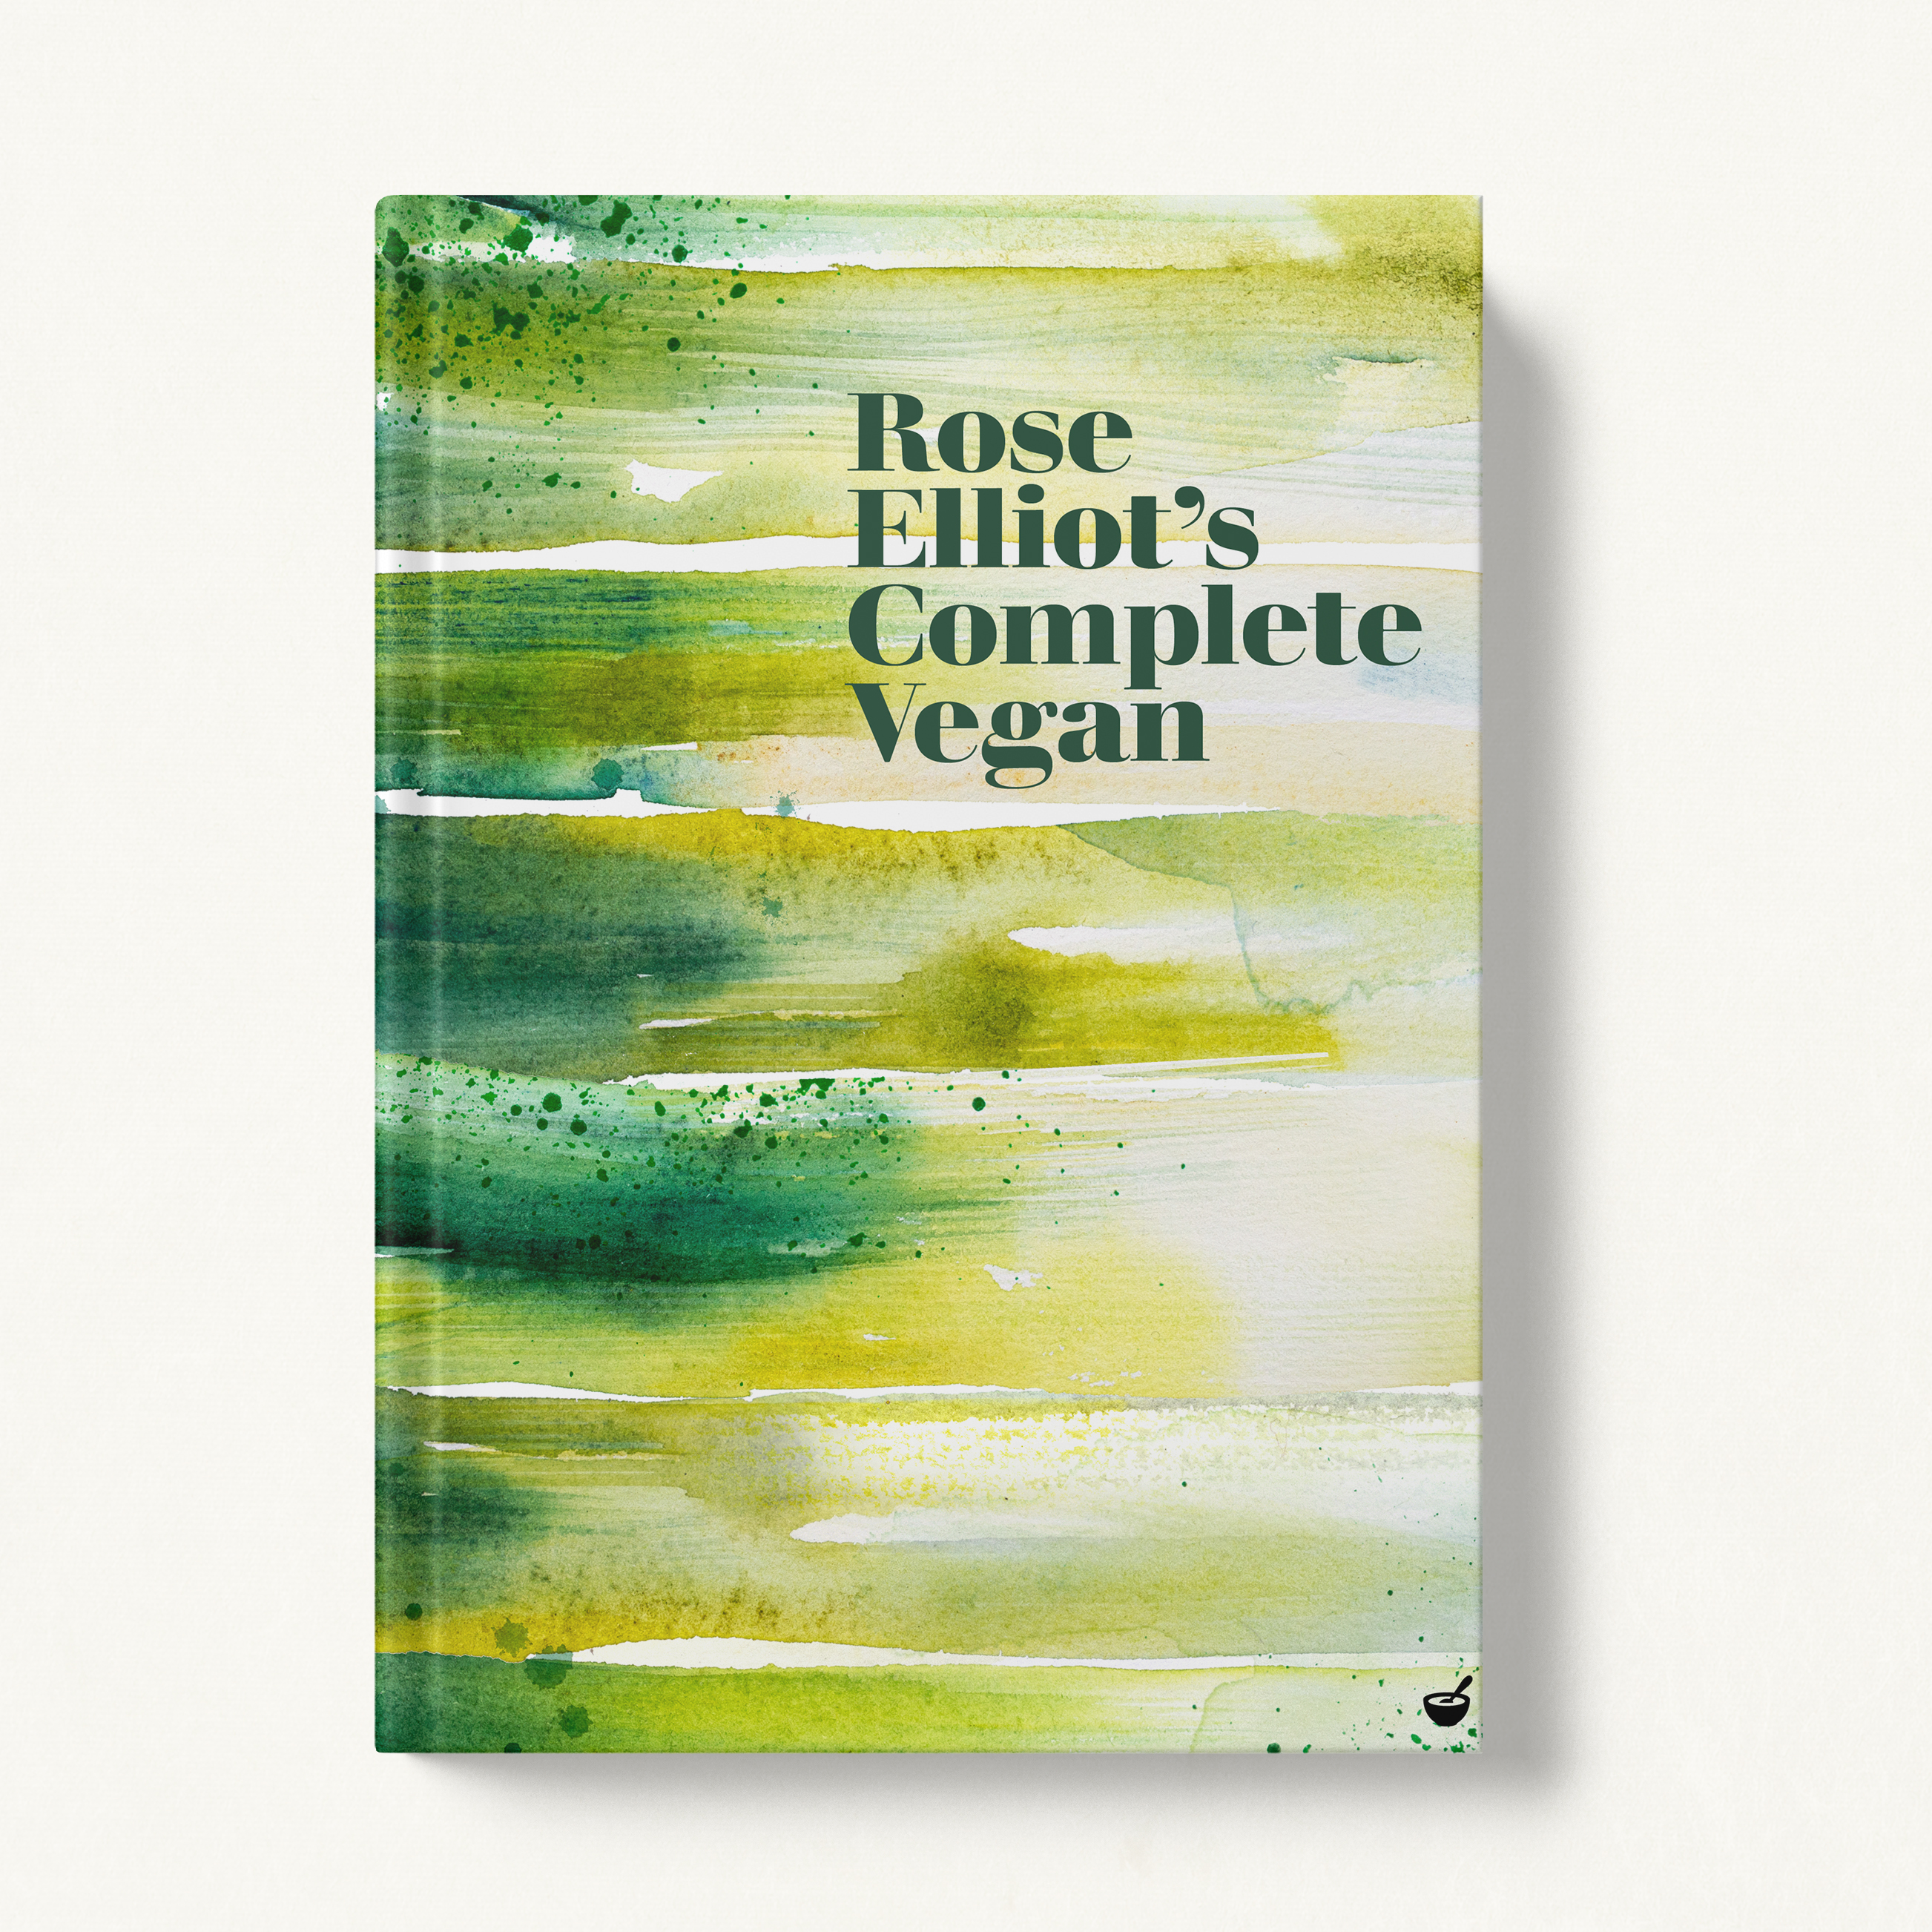 Rose Elliot's complete vegan